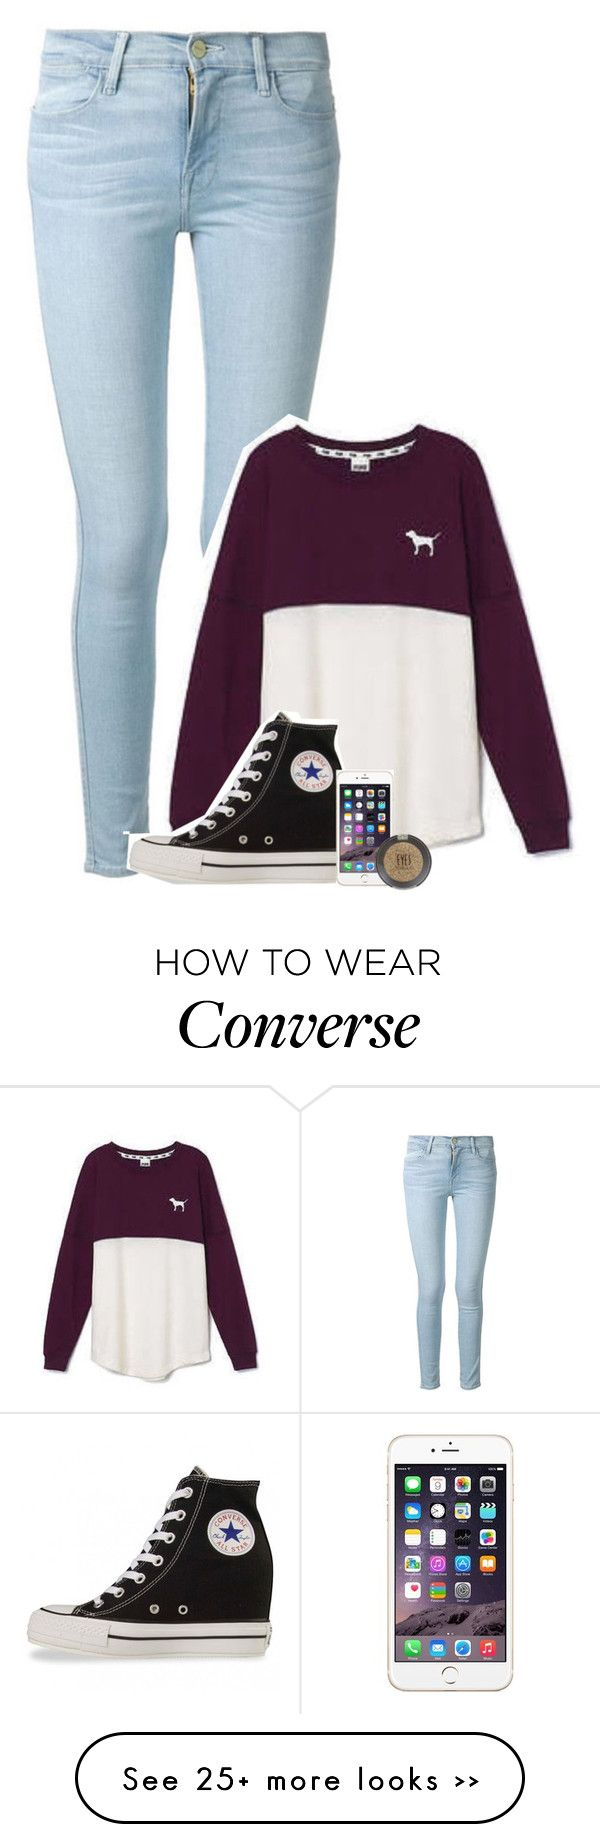 """offline soon"" by your-best-friend on Polyvore featuring Frame Denim, Victoria's Secret, Converse and Topshop"